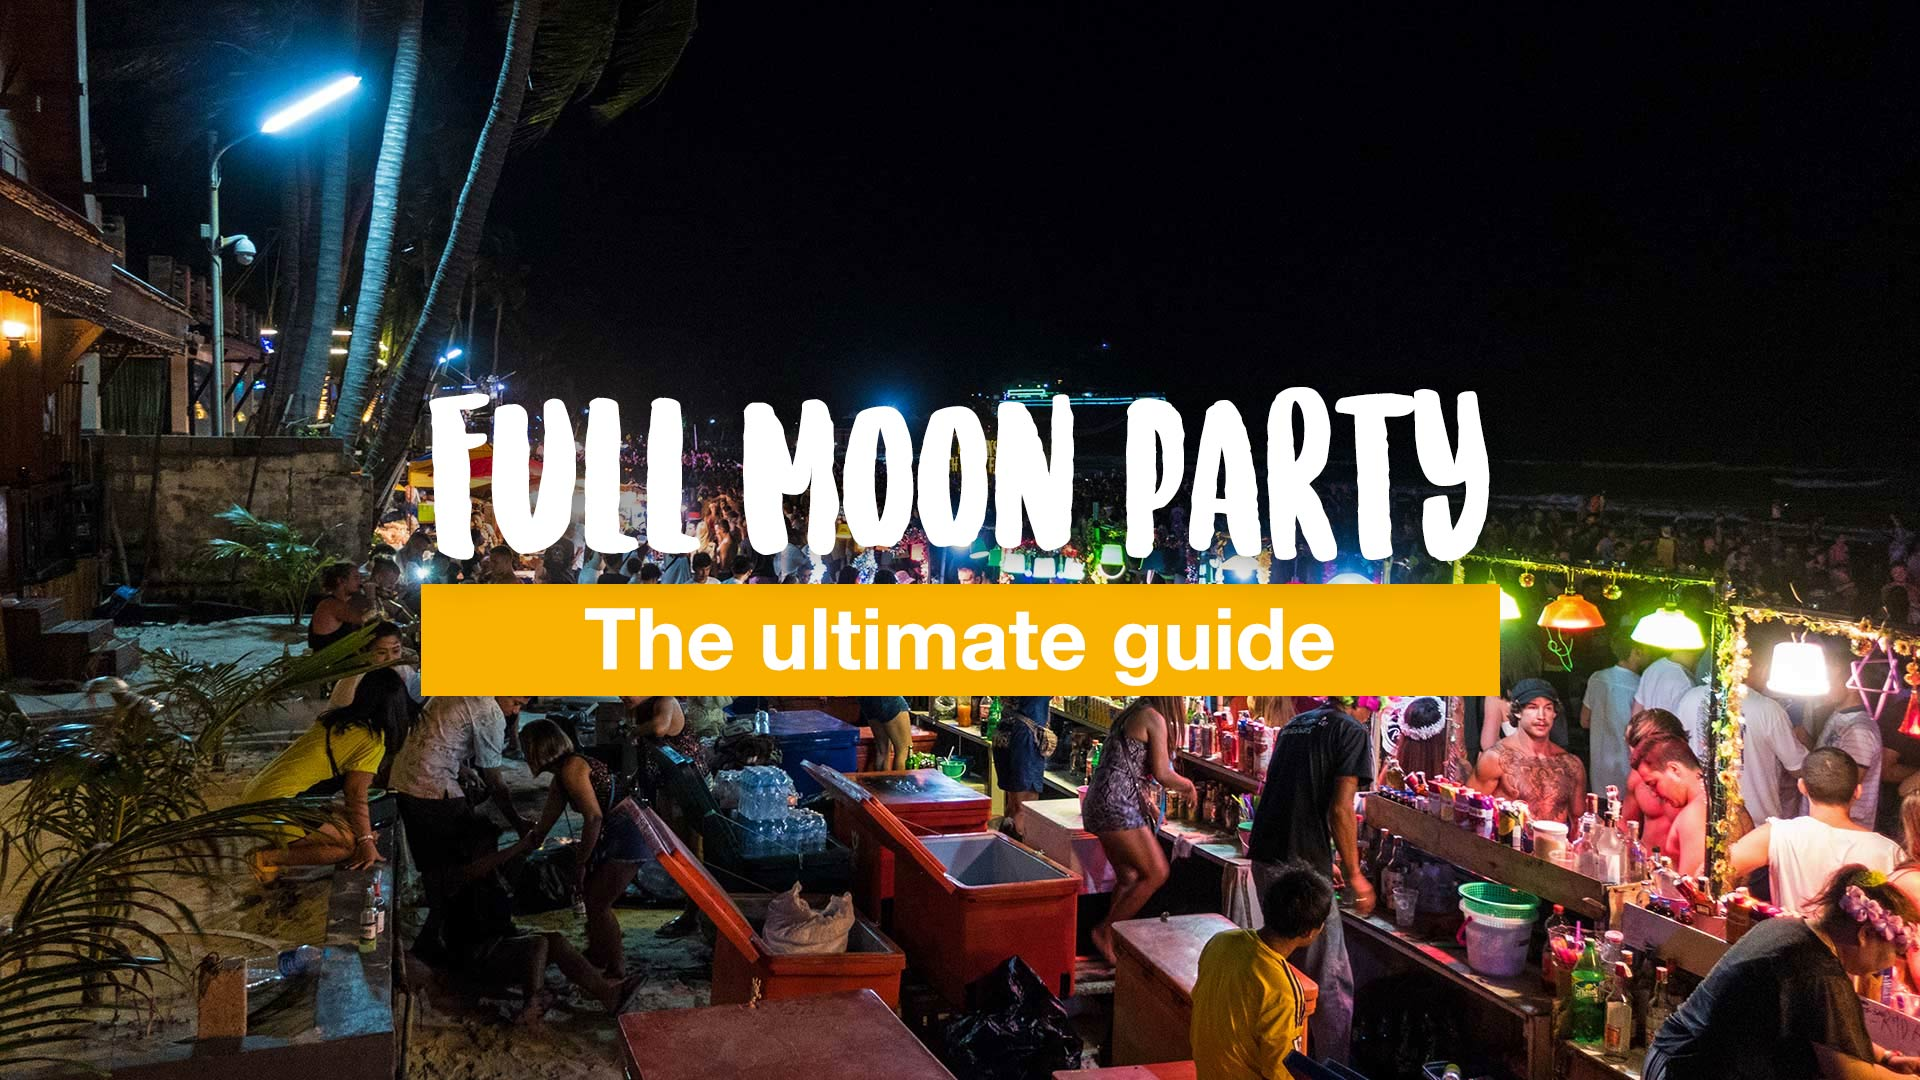 Full Moon Party Koh Phangan 2019 all dates information 1920x1080